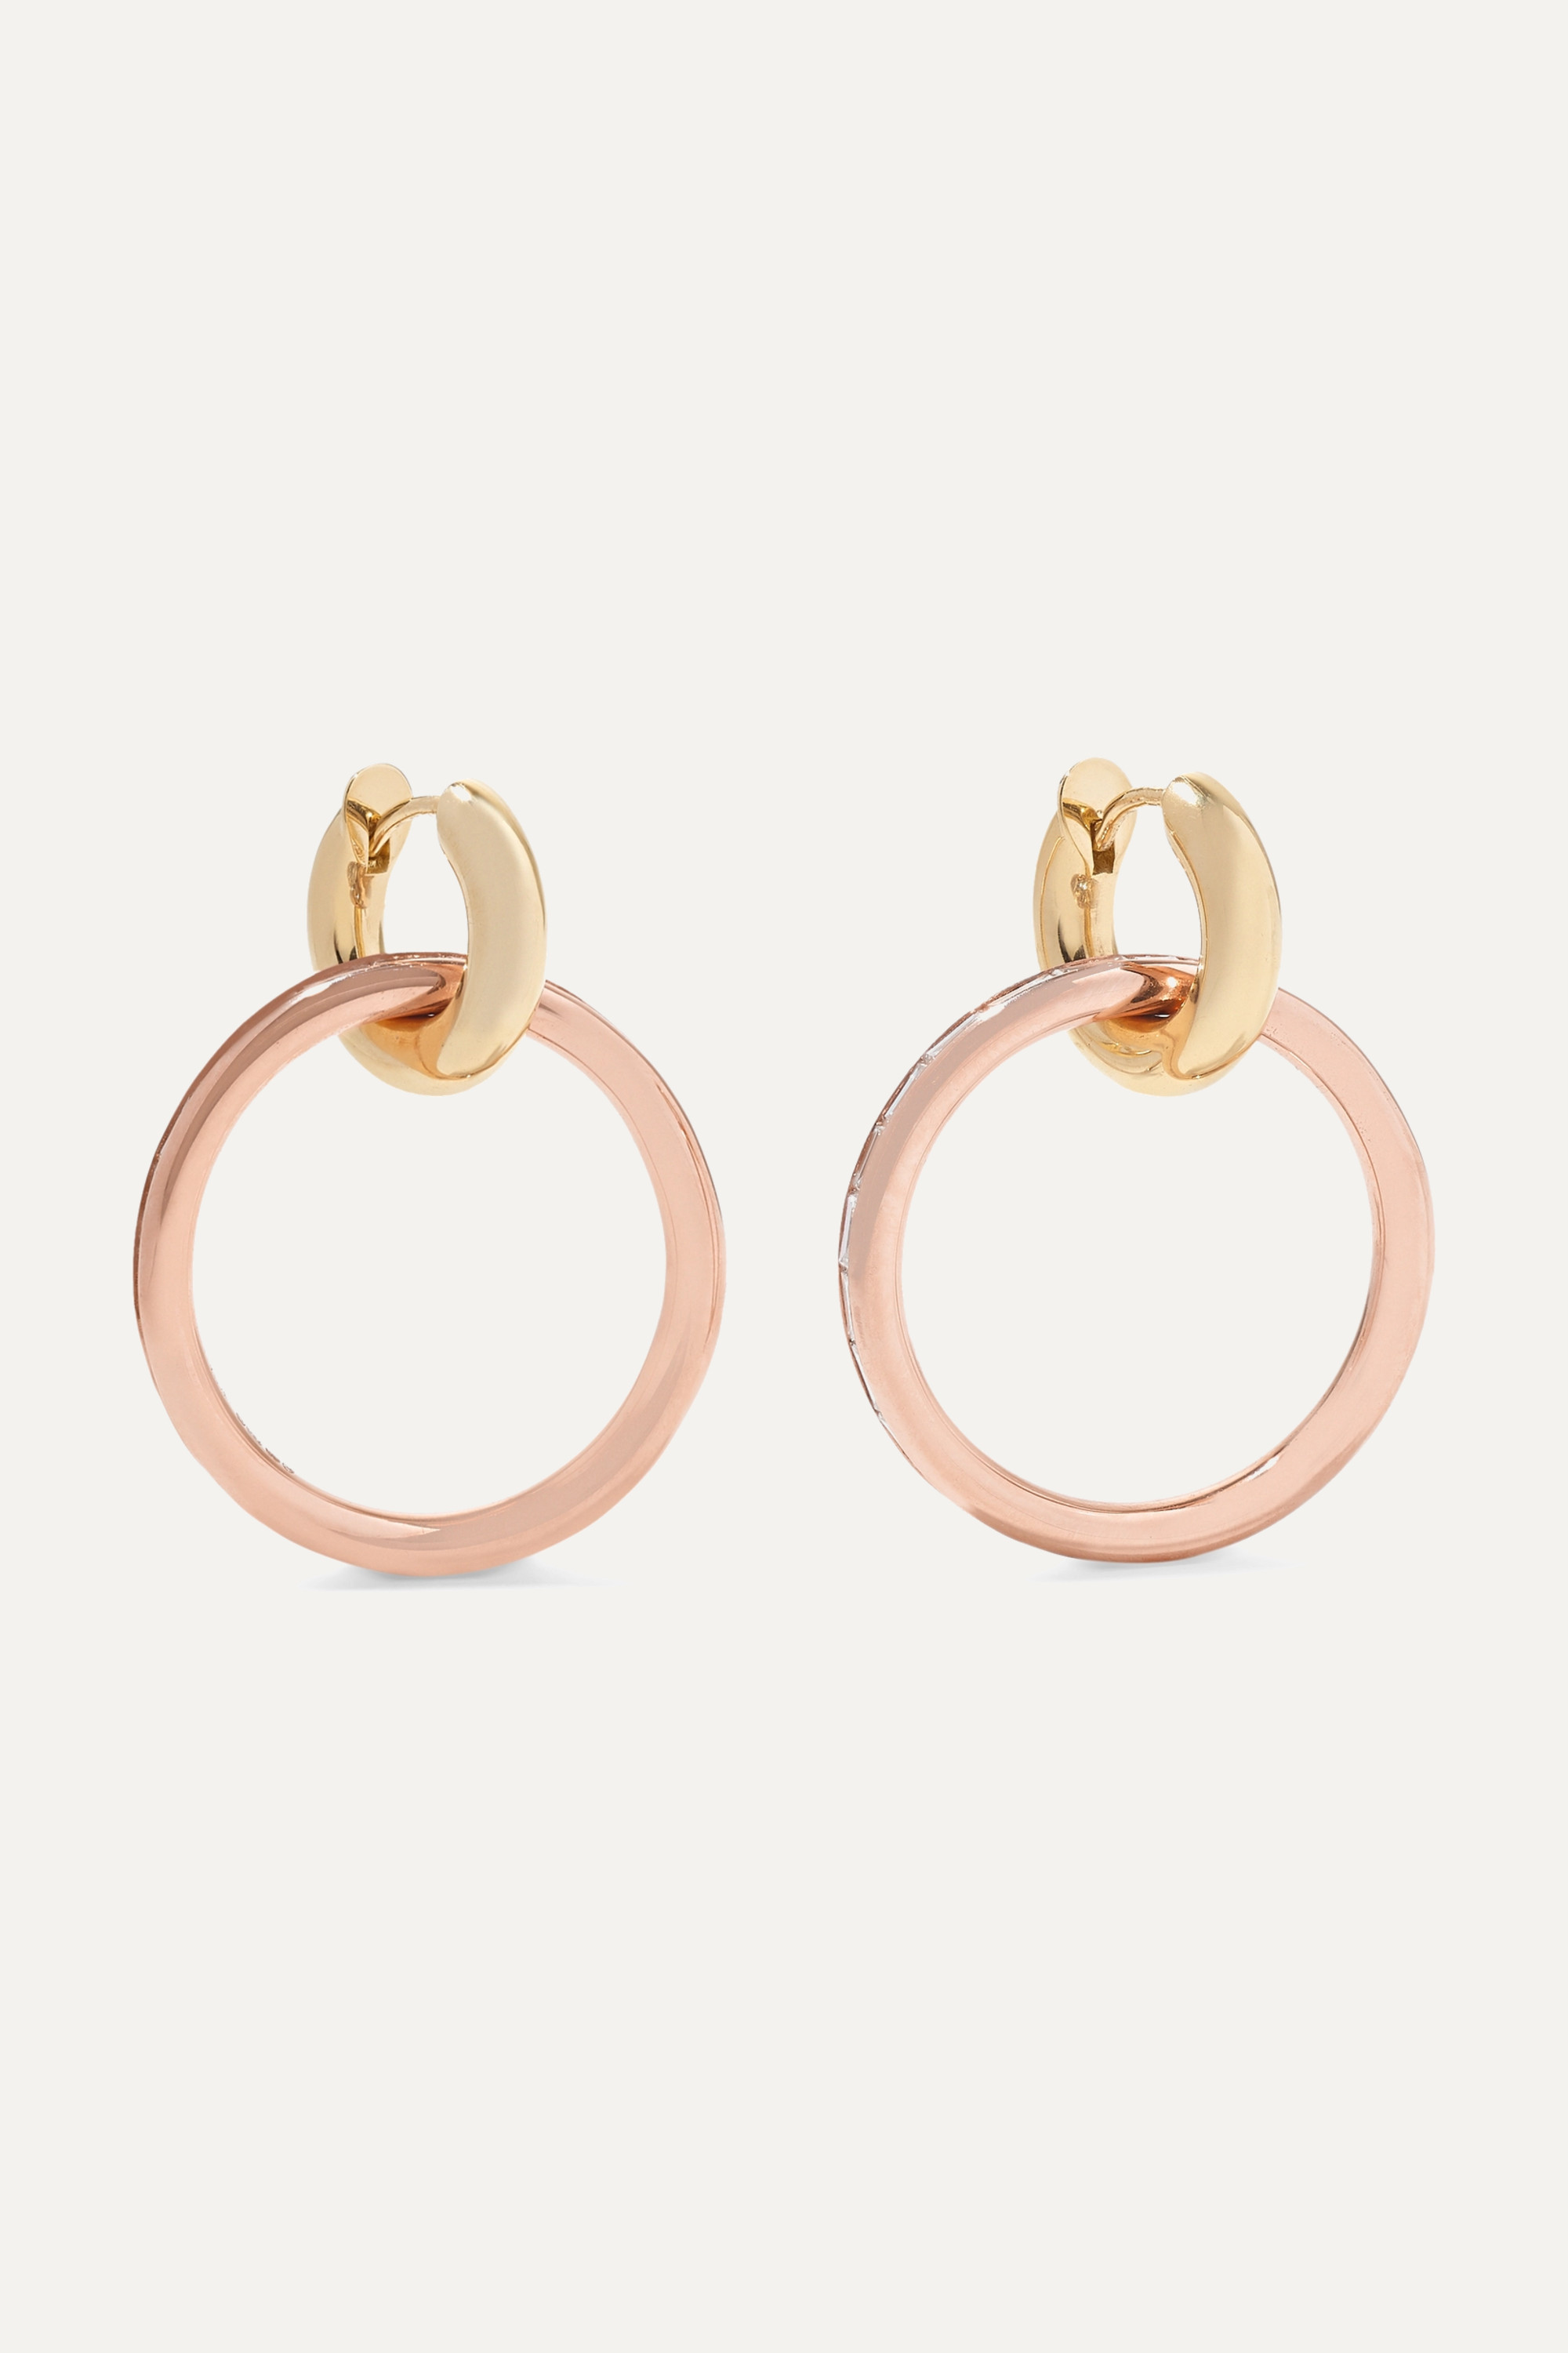 Spinelli Kilcollin Theano 18-karat rose and yellow gold diamond earrings